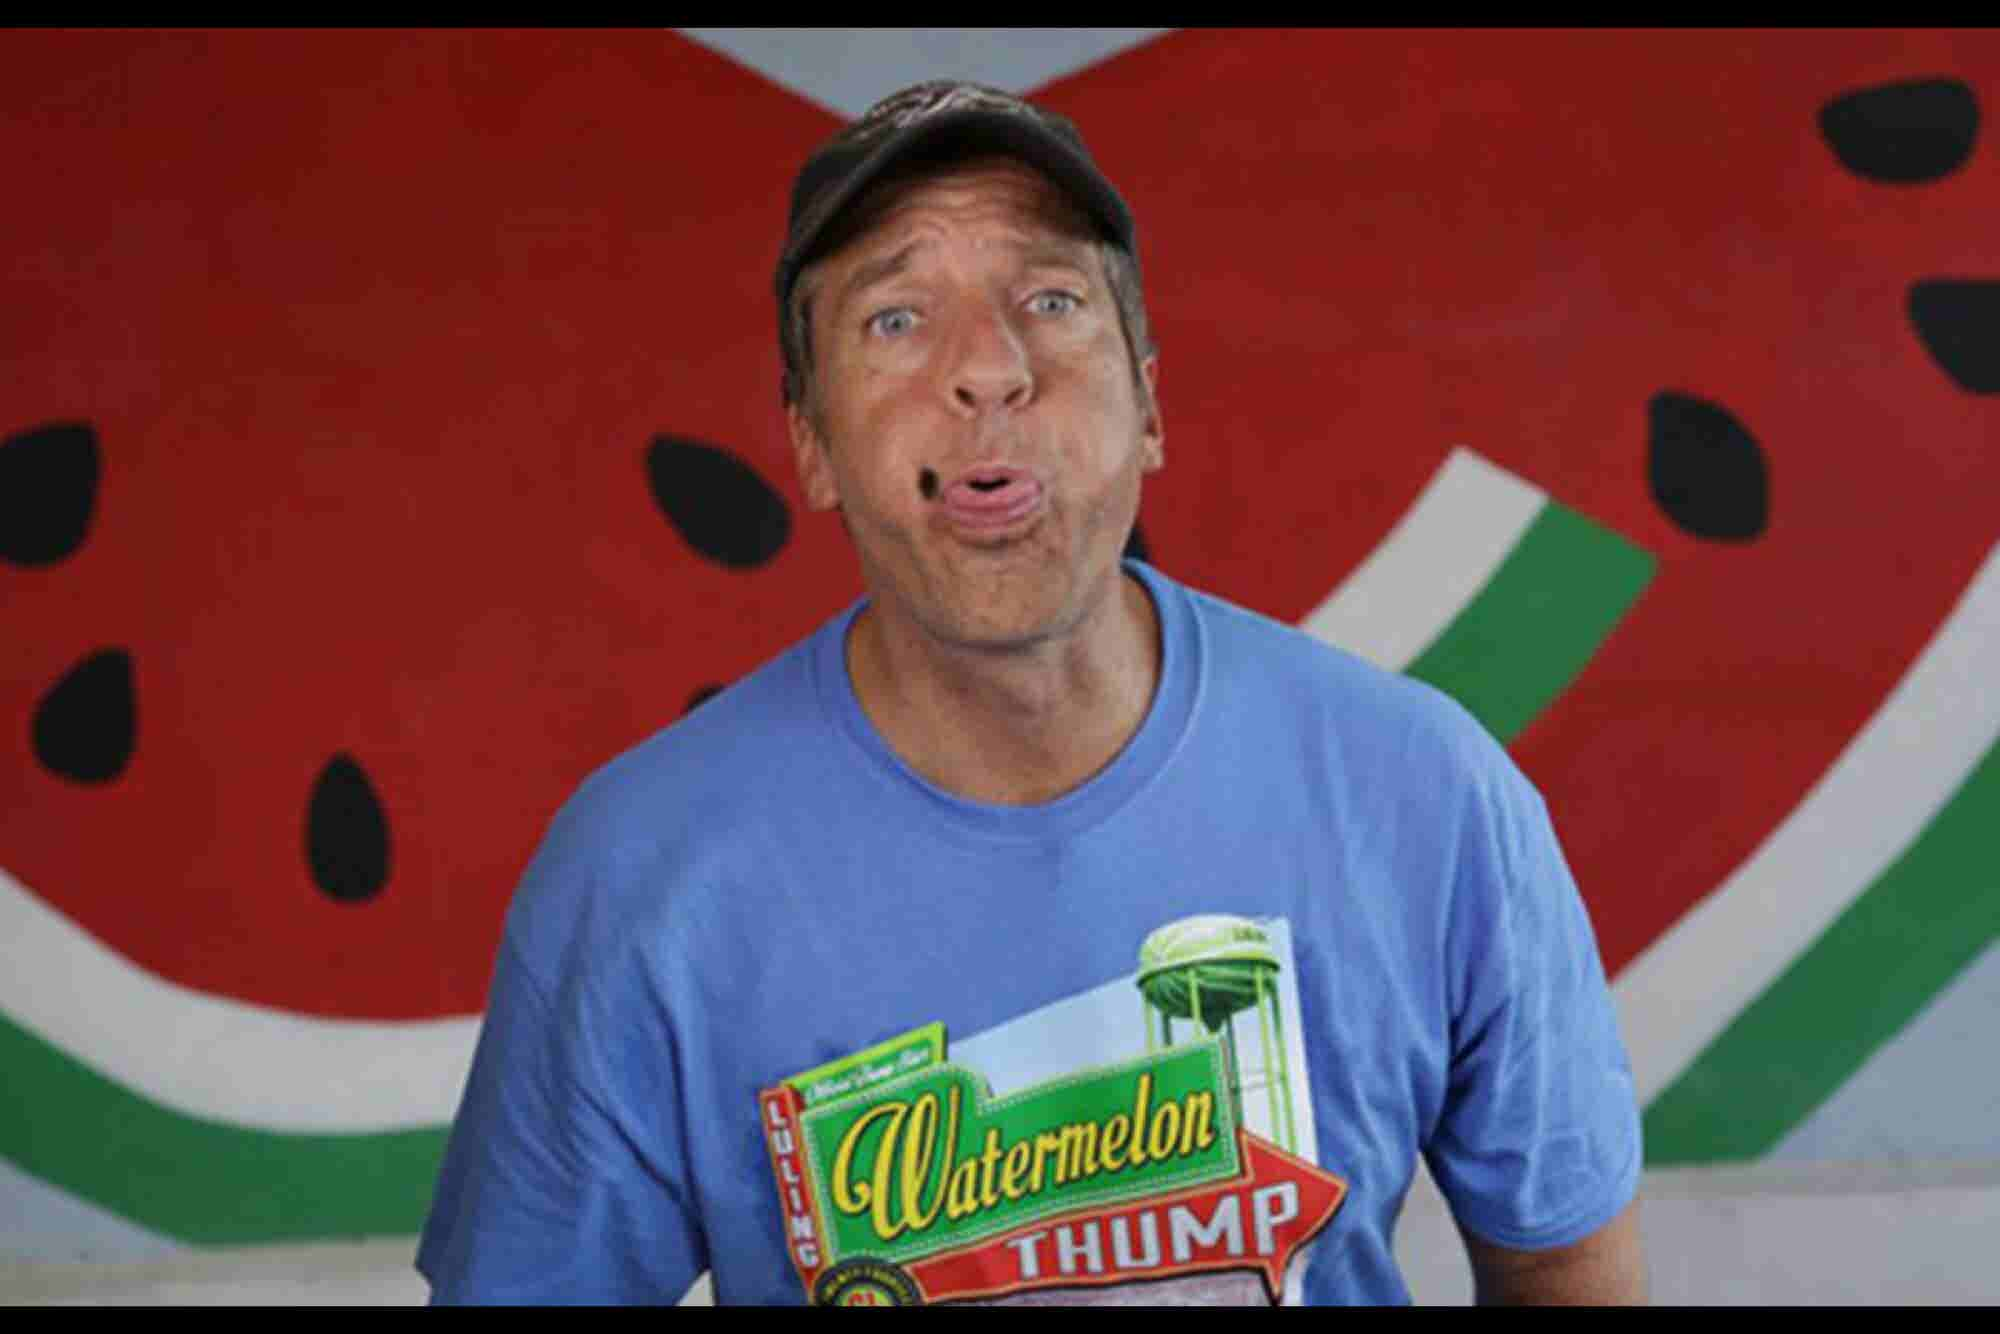 Mike Rowe on His Facebook Obsession, Working Hard and Singing Opera